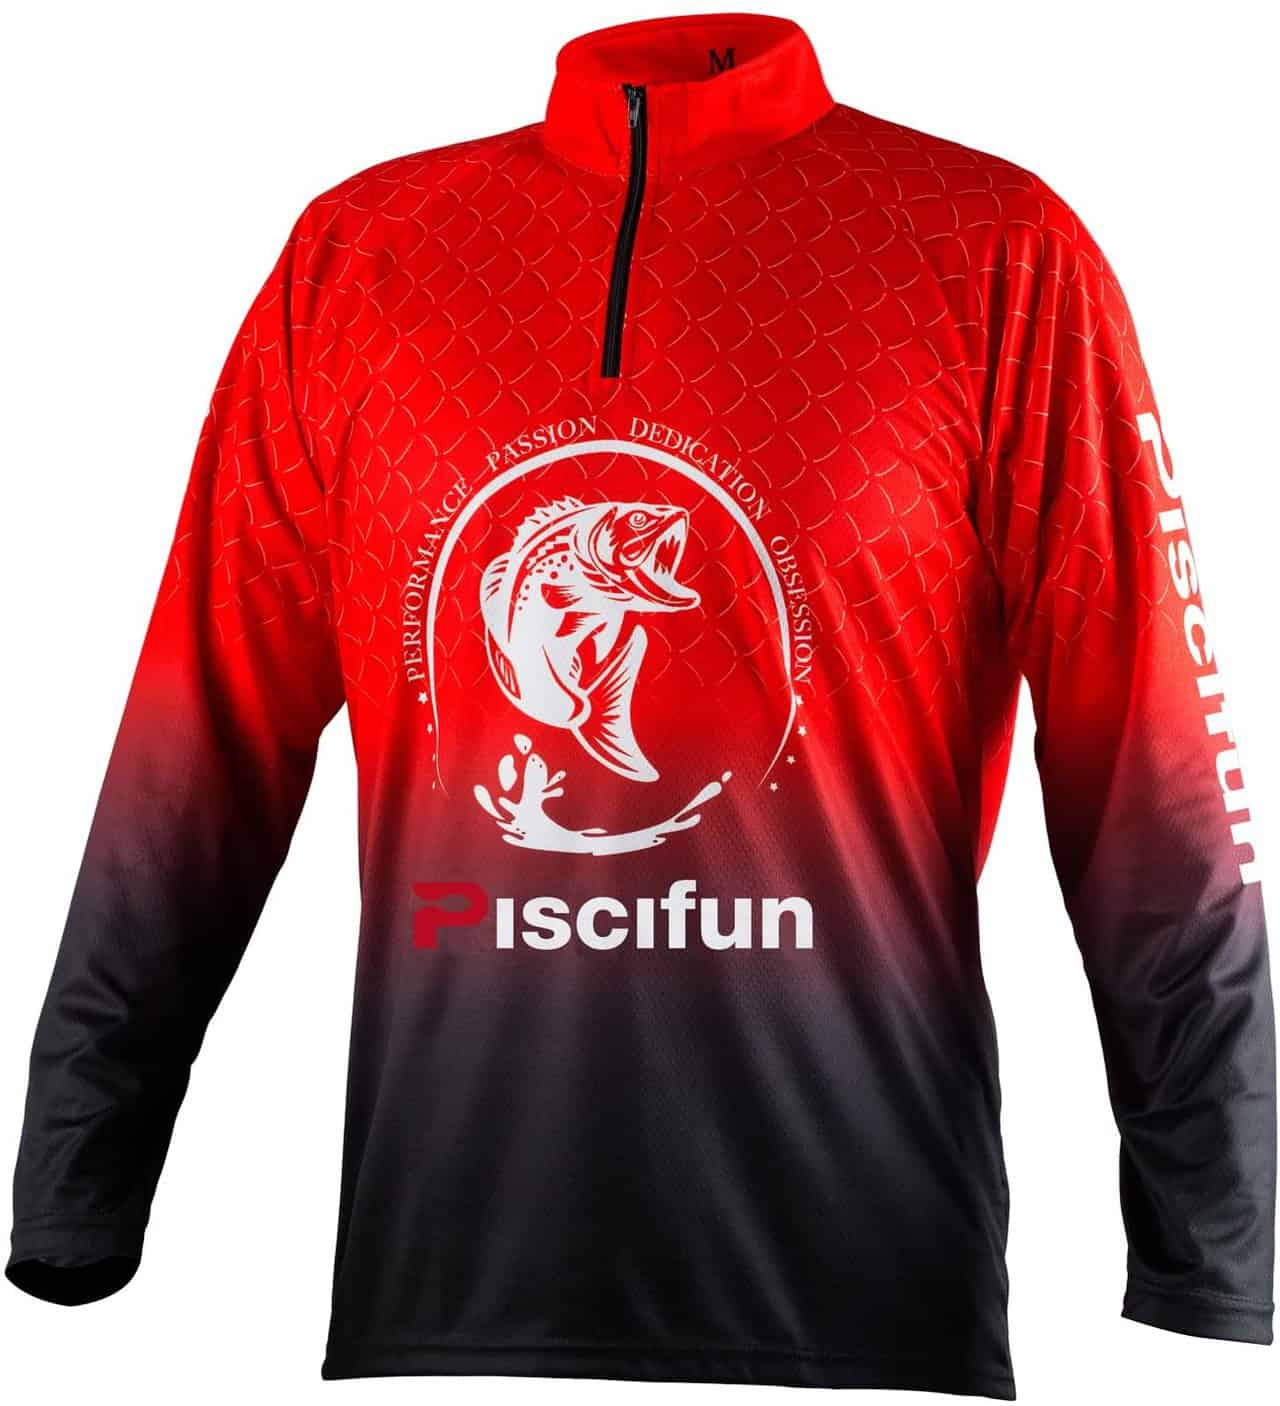 UPF Long Sleeve Fishing Shirt by Piscifun